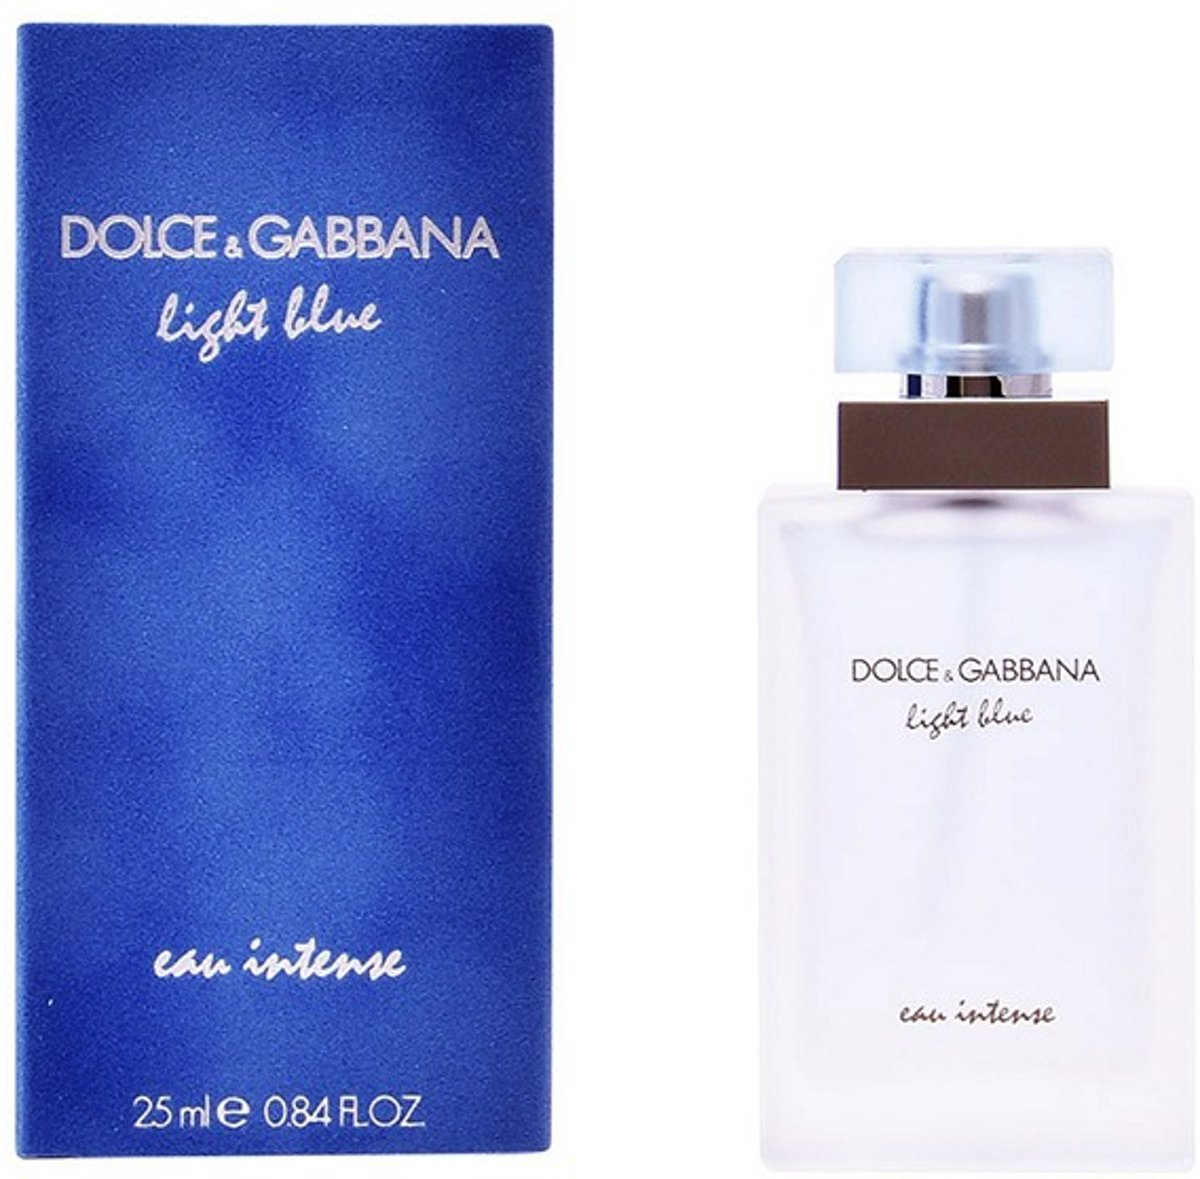 Dolce & Gabbana Light Blue Eau Intense - 25 ml - Eau de Parfum